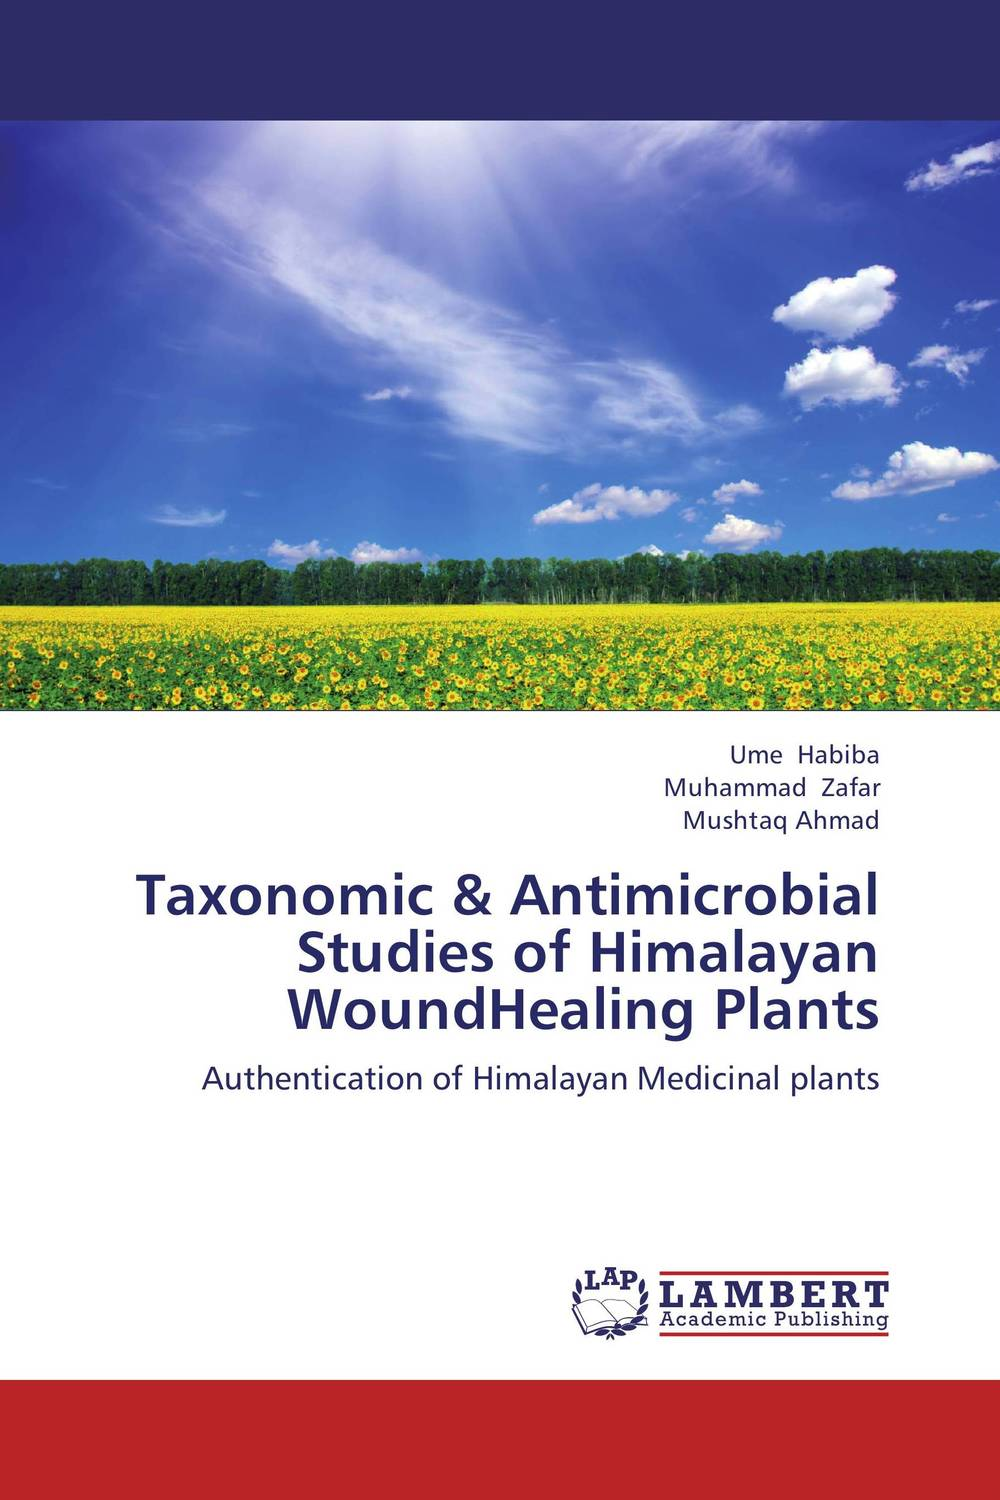 Taxonomic & Antimicrobial Studies of Himalayan WoundHealing Plants